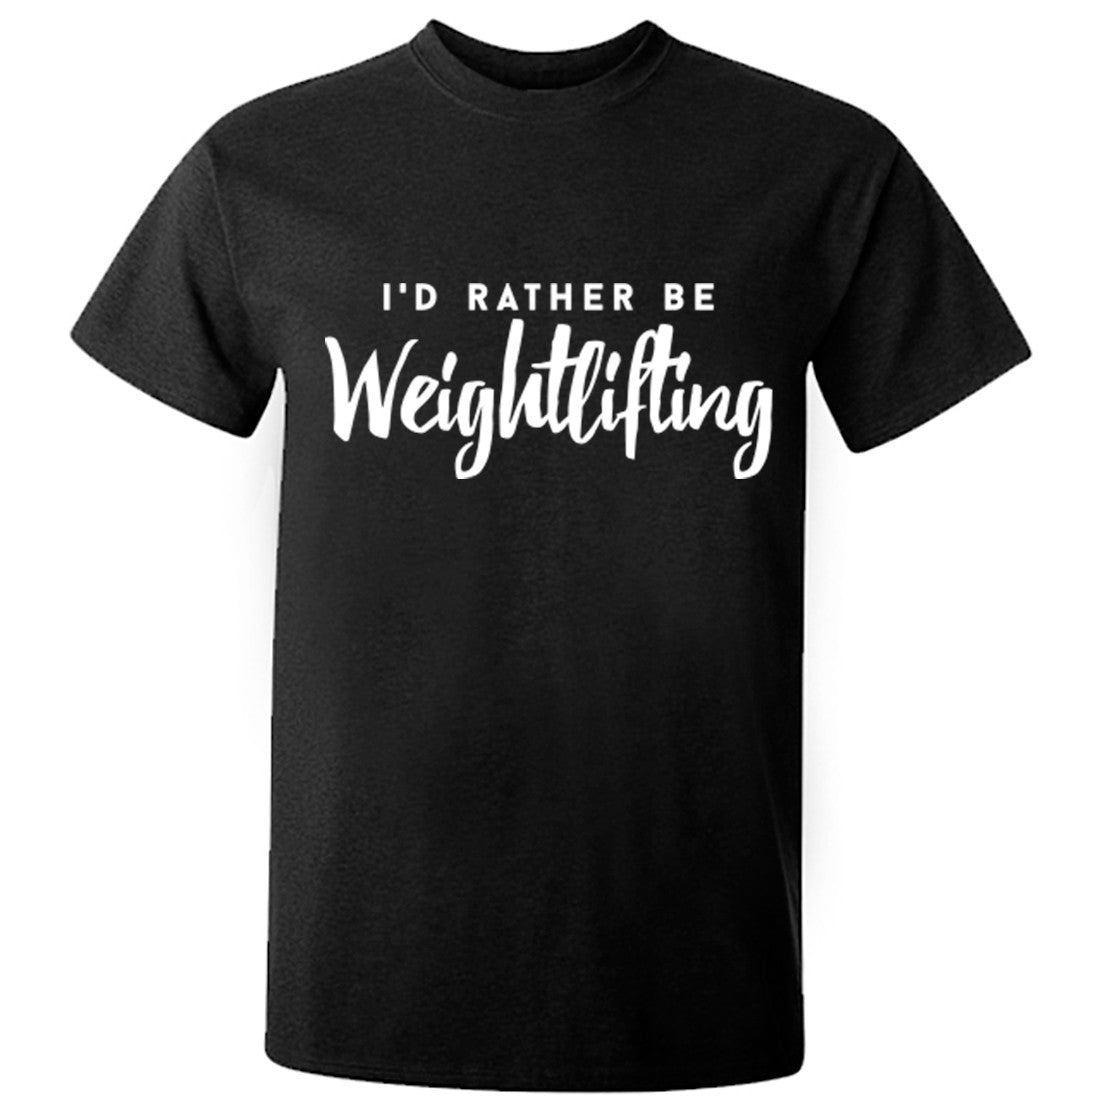 I'd rather be weightlifting unisex t-shirt K0226